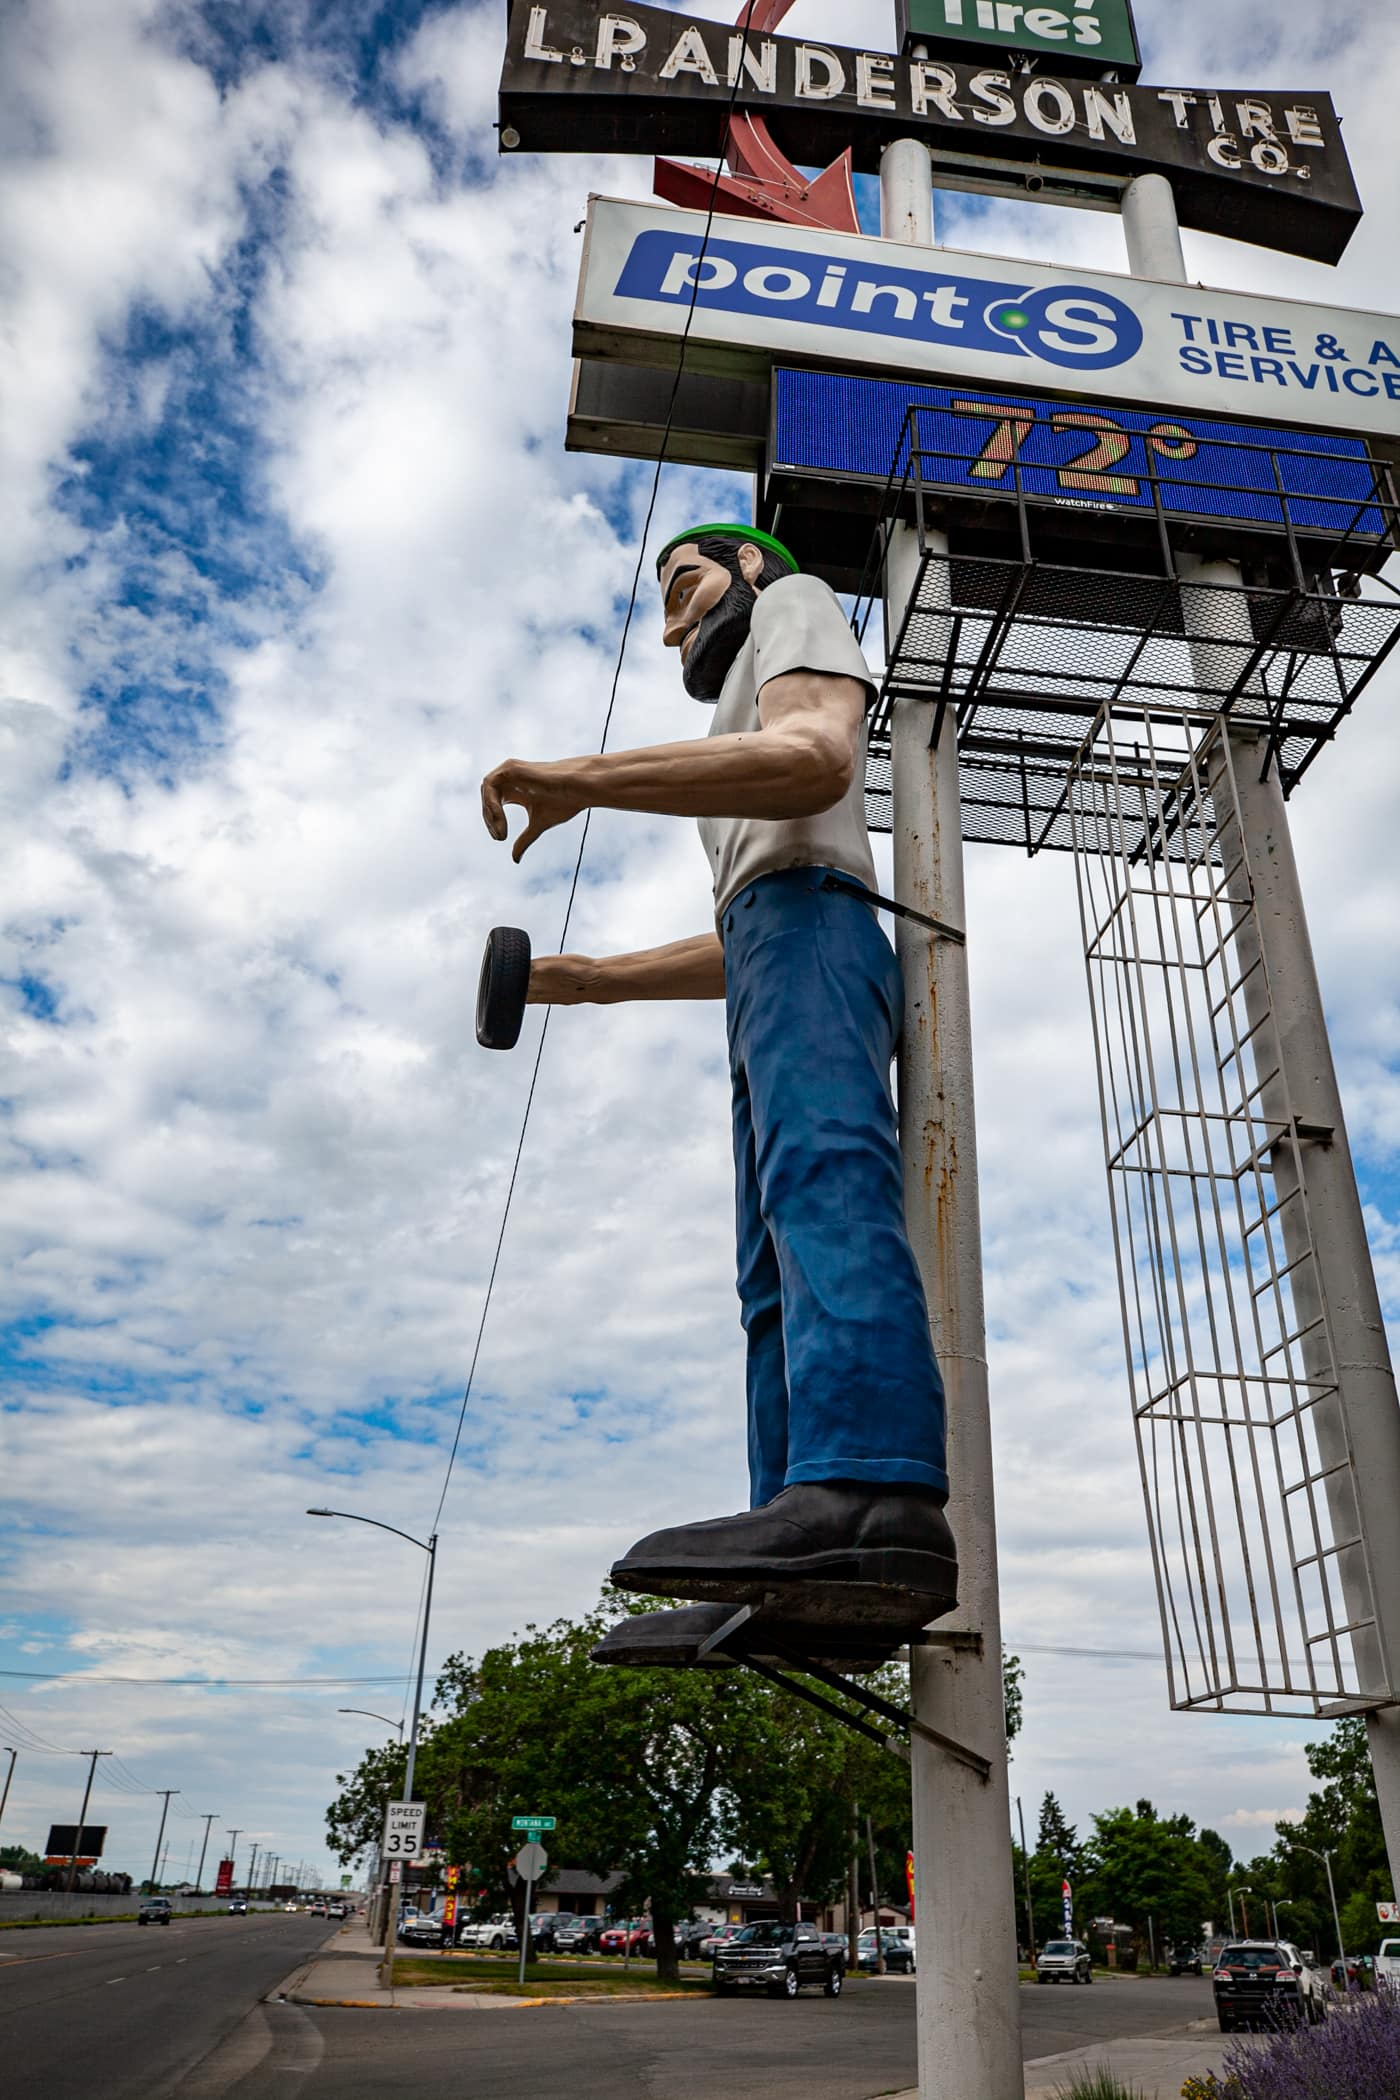 L.P. Anderson Tire Factory Muffler Man in Billings, Montana | Montana Roadside Attractions